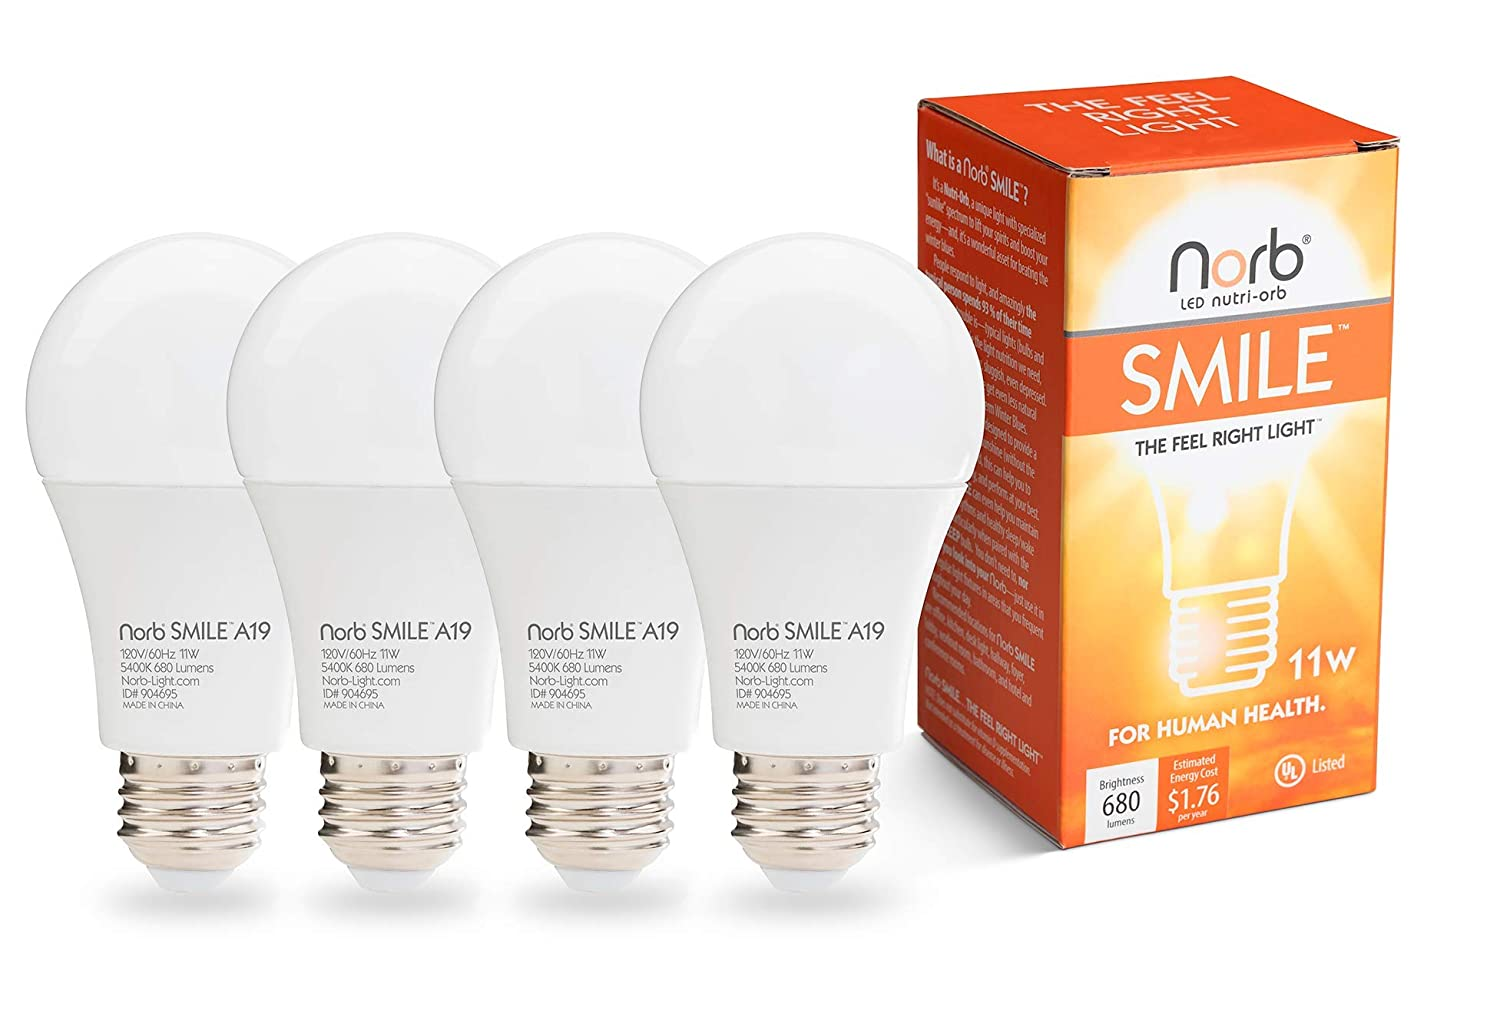 "NorbSMILE Advanced Full Spectrum A19 LED Light Bulb, Natural Sunlike Spectrum, Supplements SAD Light, Supports Circadian Rhythm, Happy Mood, Energy Performance,""The Feel Right Light"""